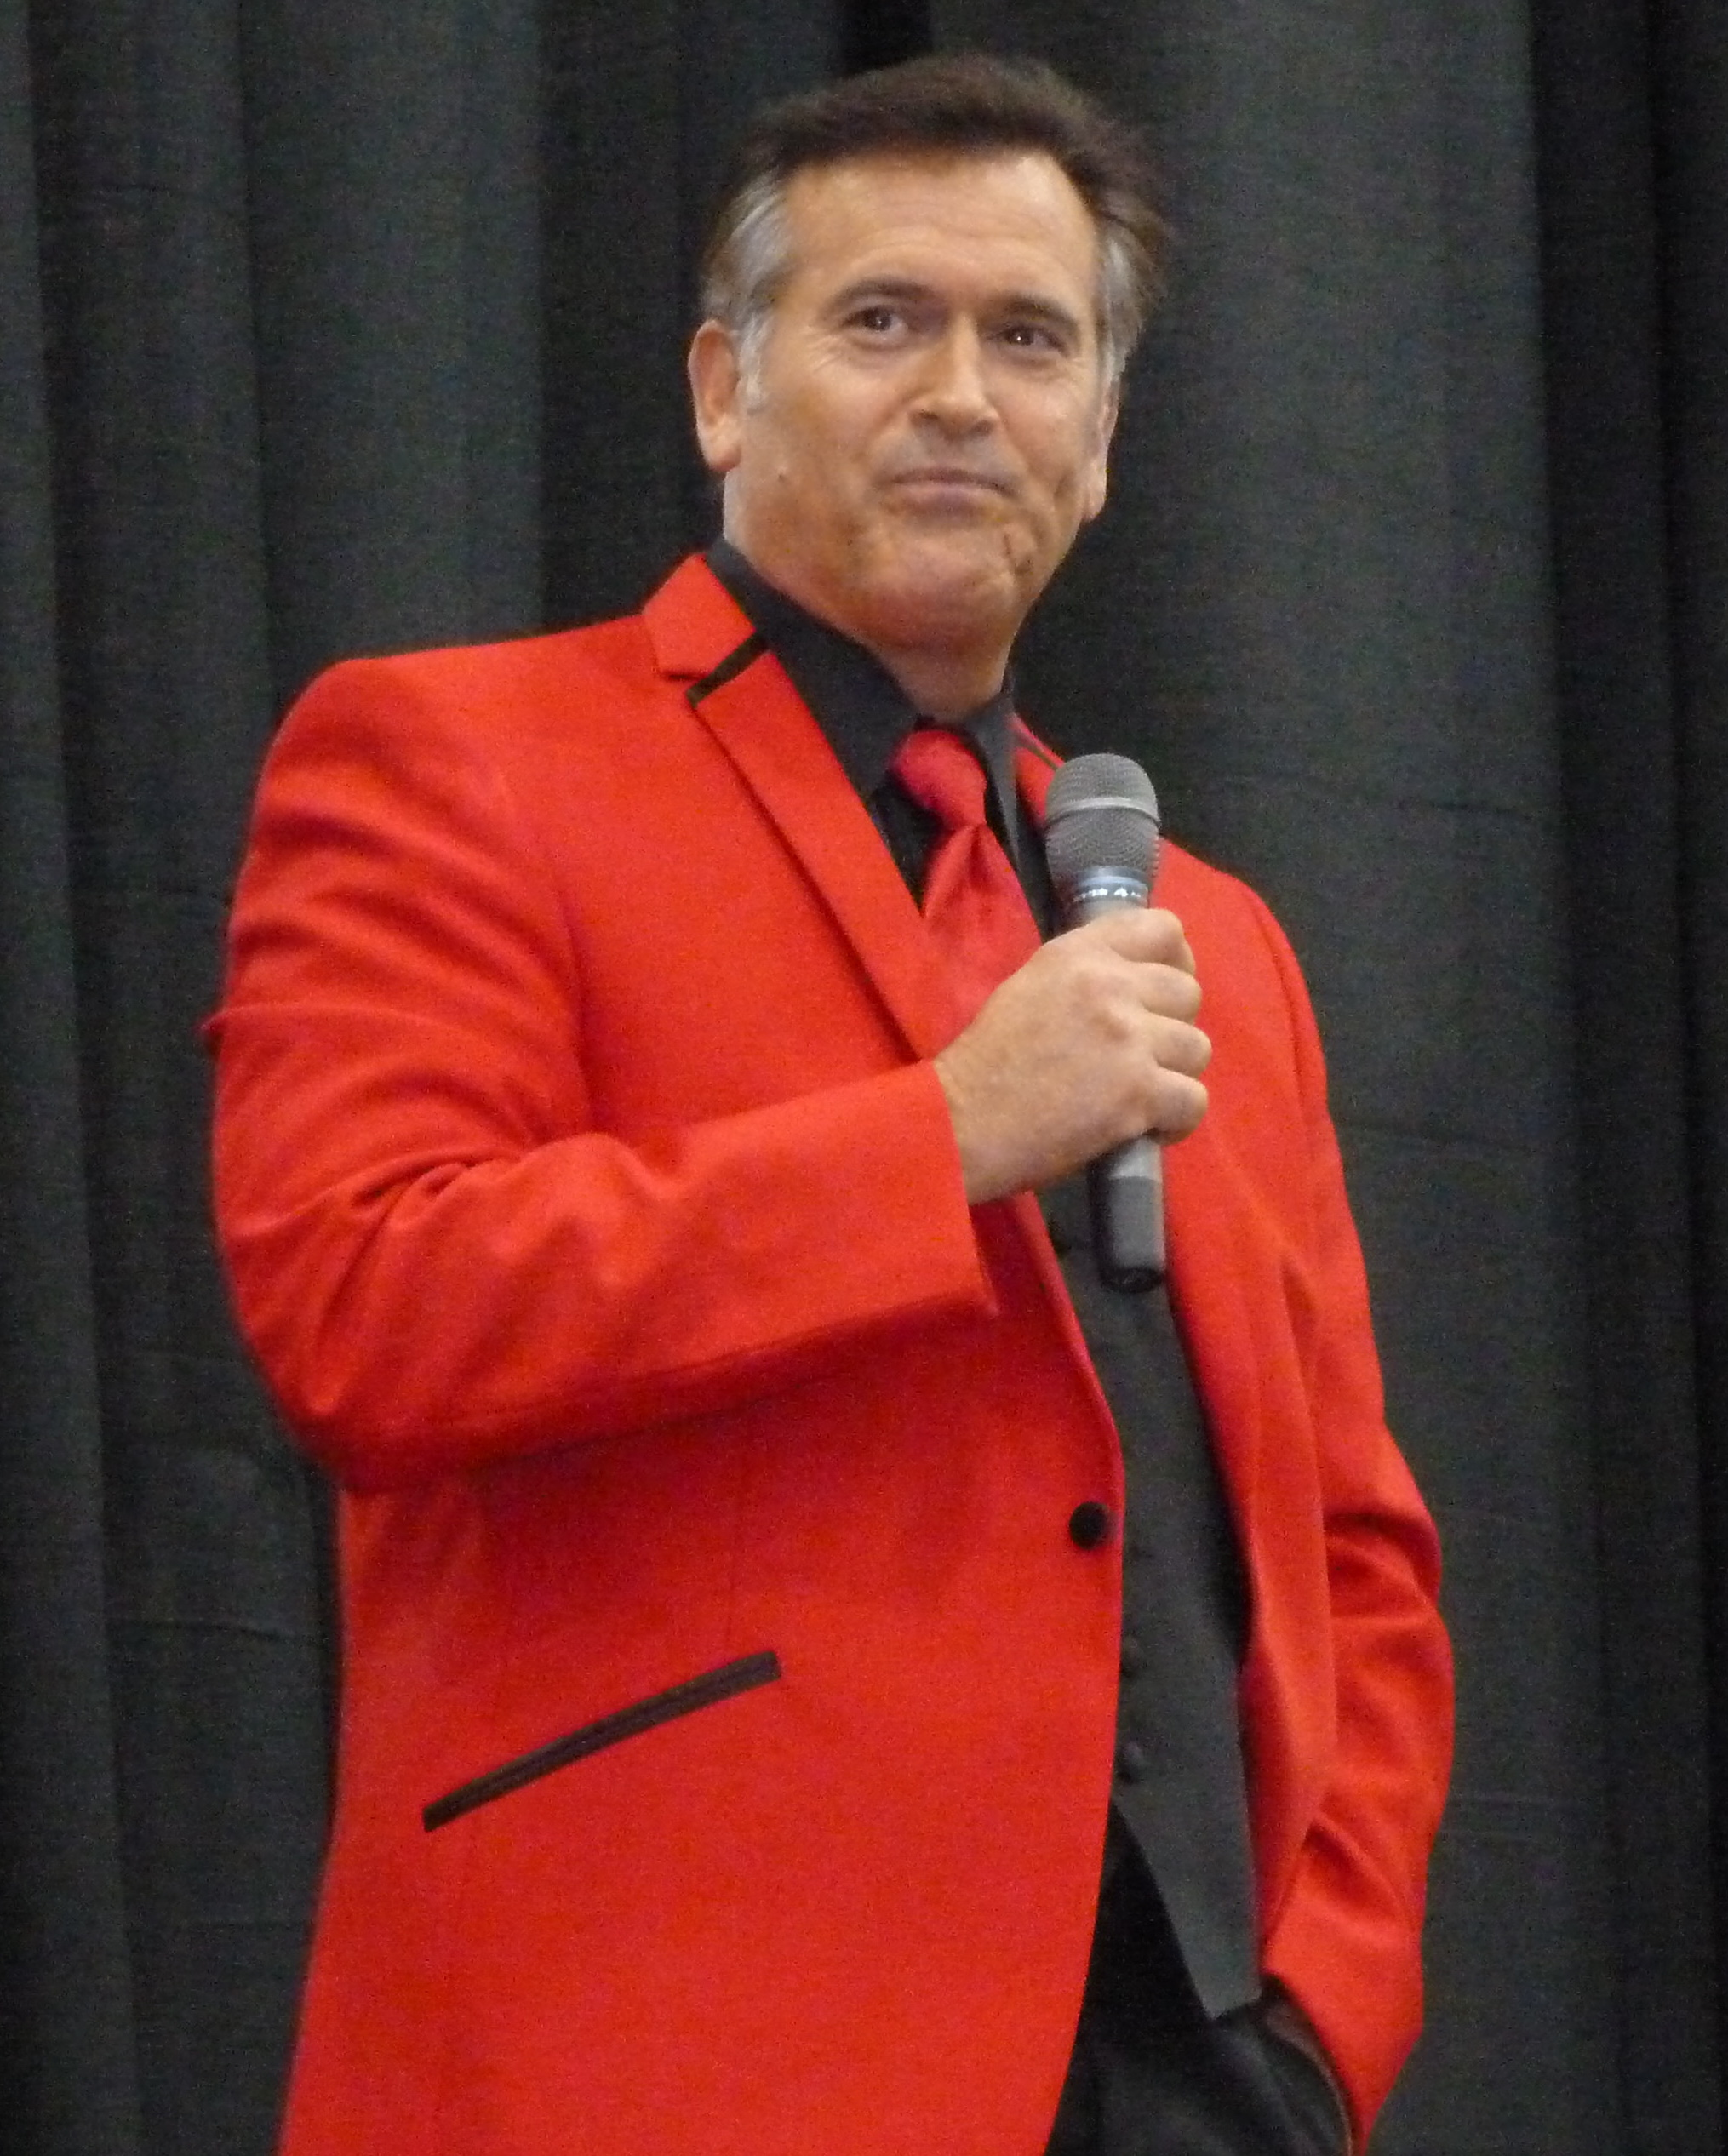 bruce campbell conservative